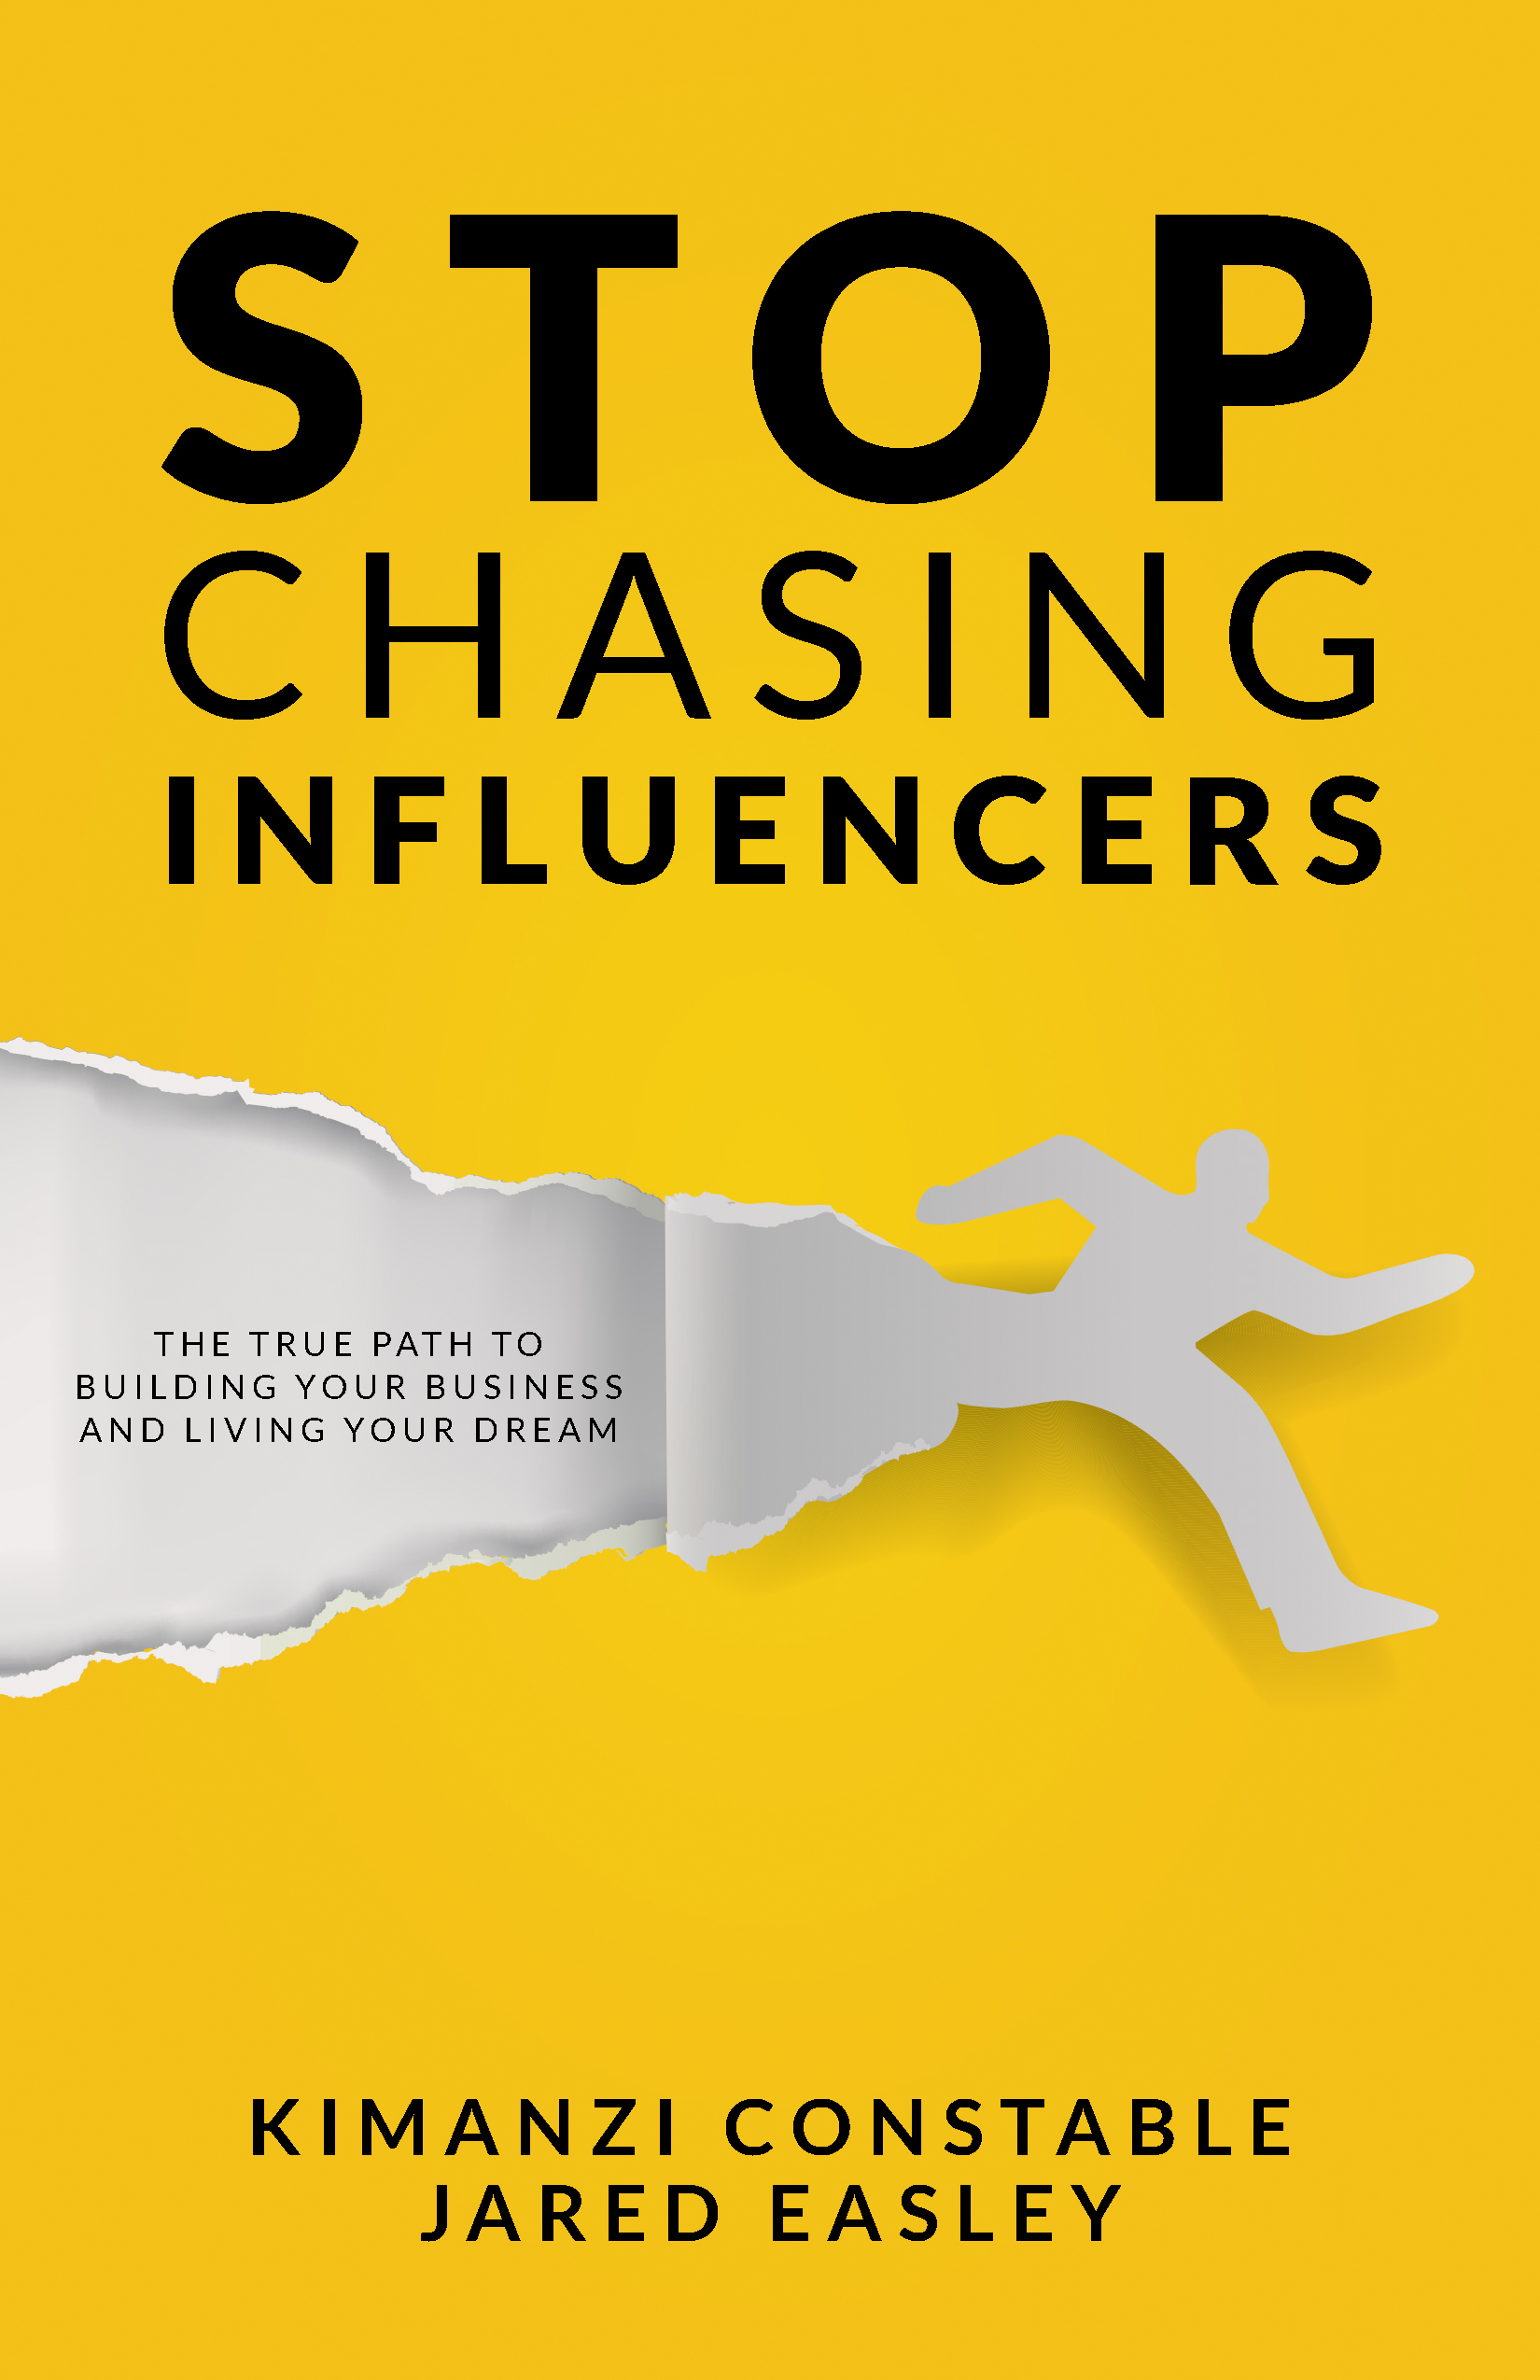 Stop Chasing Influencers - By kimanzi constable & Jared easley